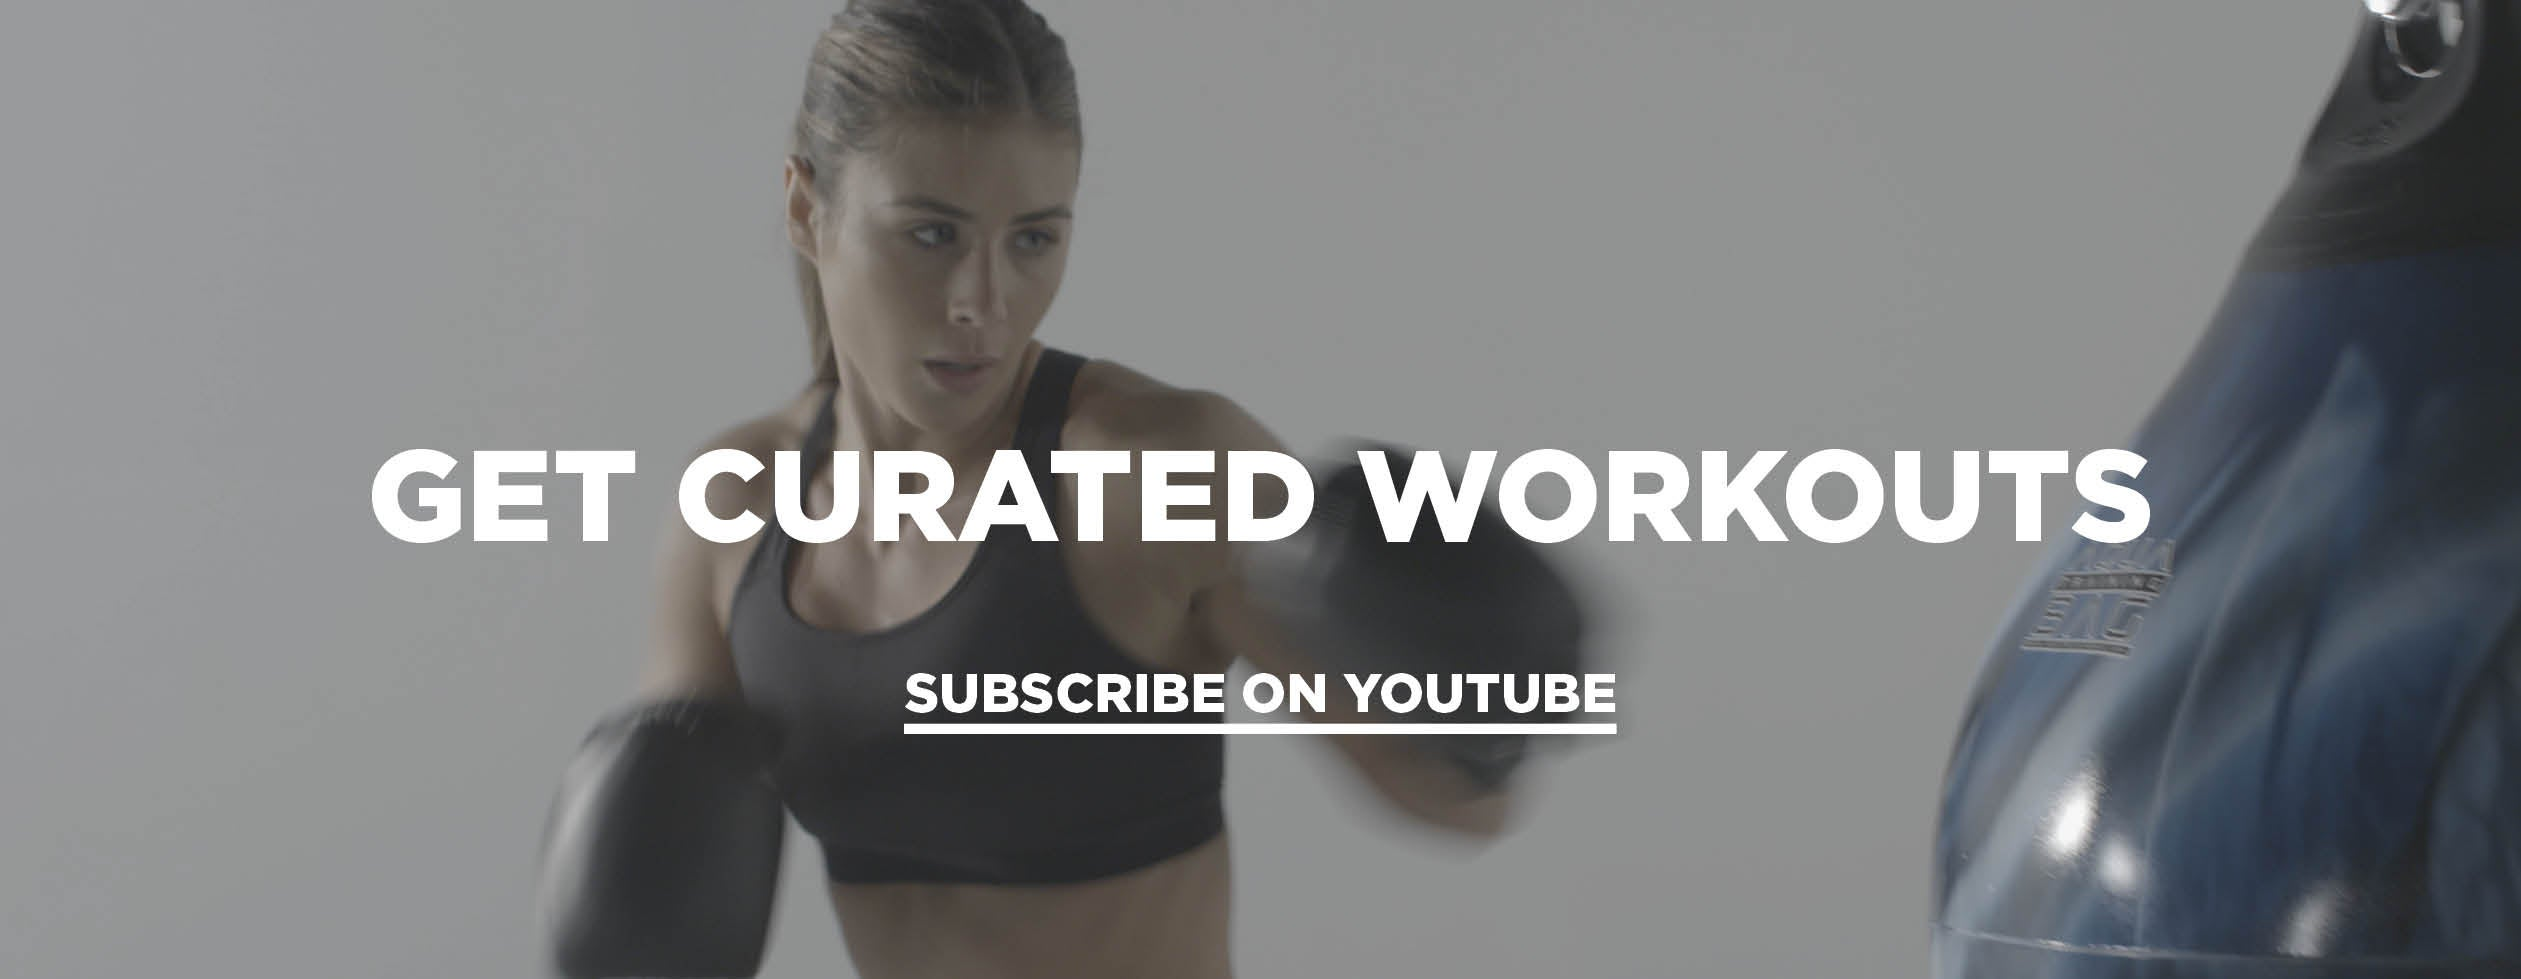 Get Curated Workouts - Subscribe on YouTube